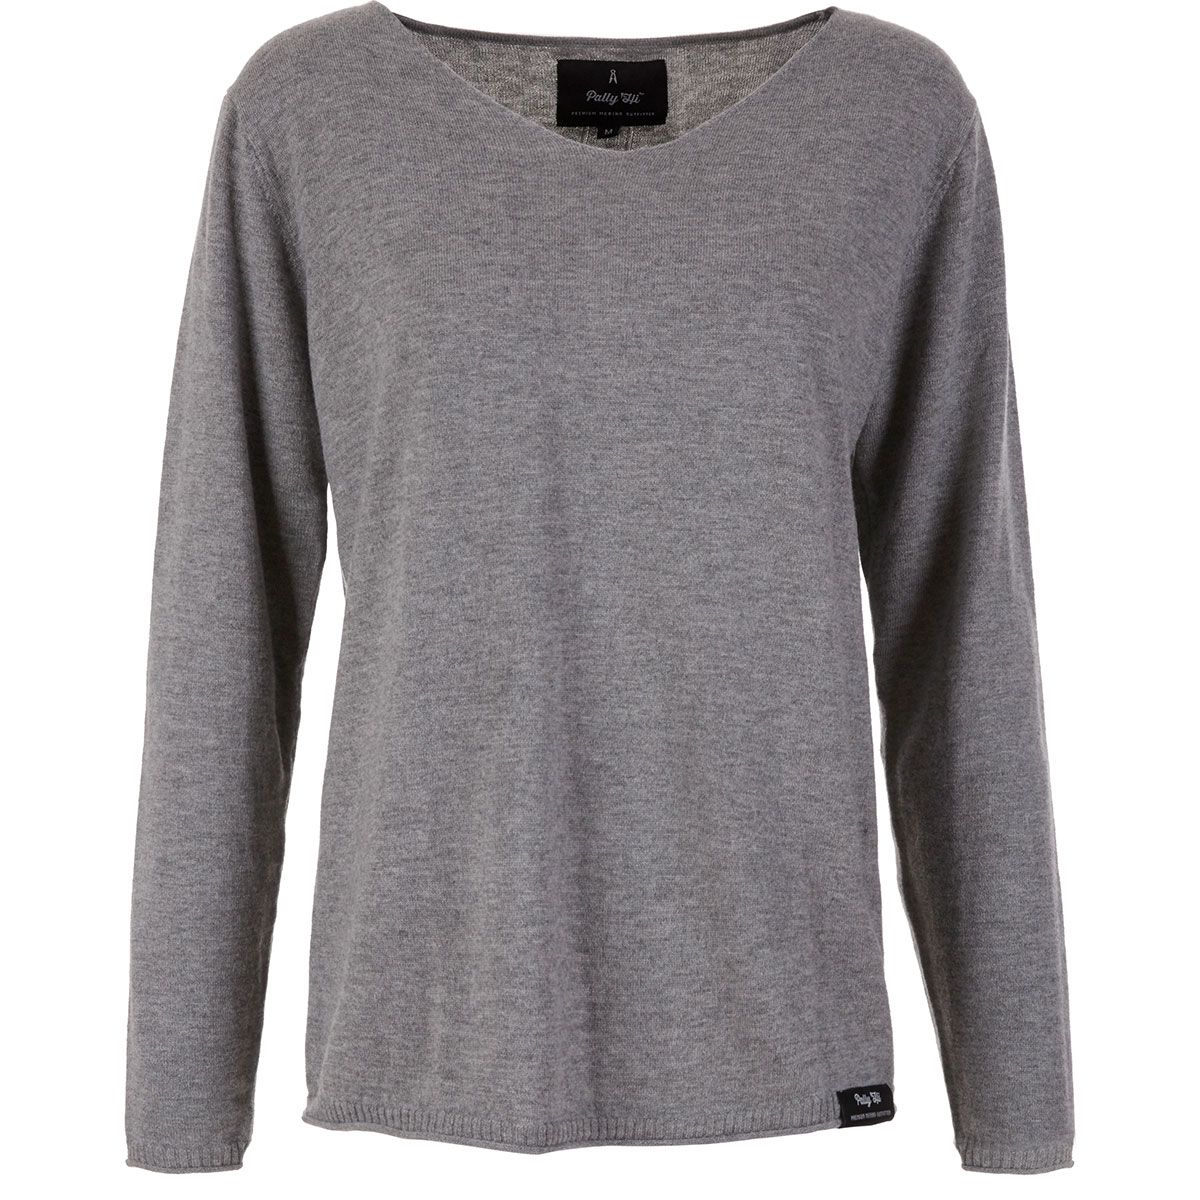 Pally'Hi Damen Mary Lunch Knit Sweatshirt (Größe XS, Grau) | Pullover > Damen